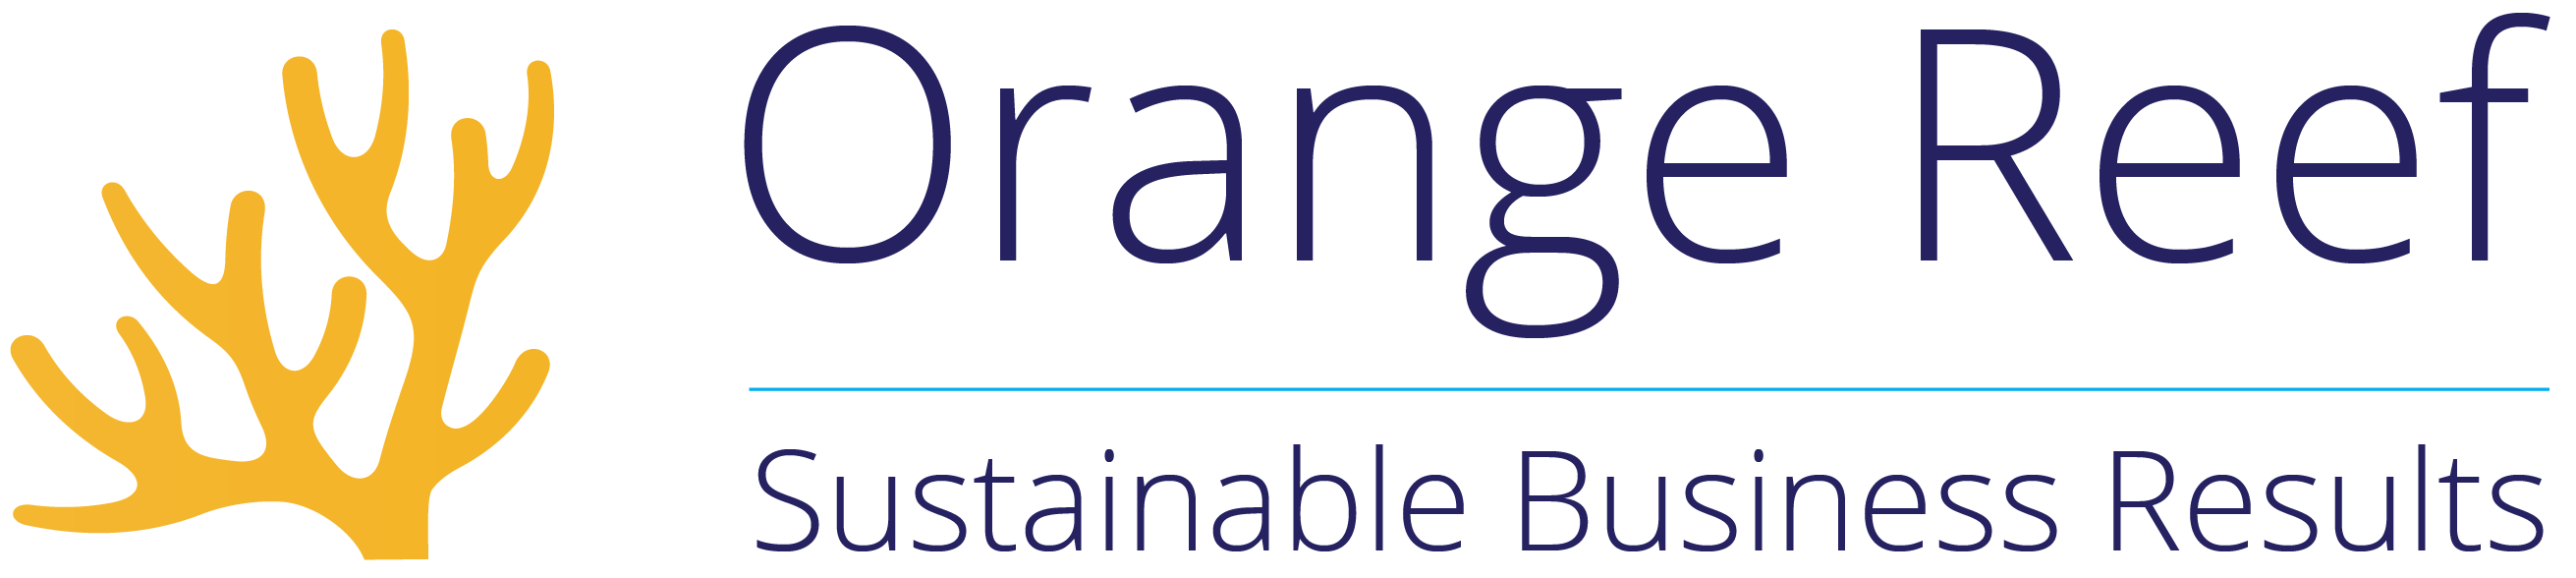 Orange Reef Sustainable Business Results